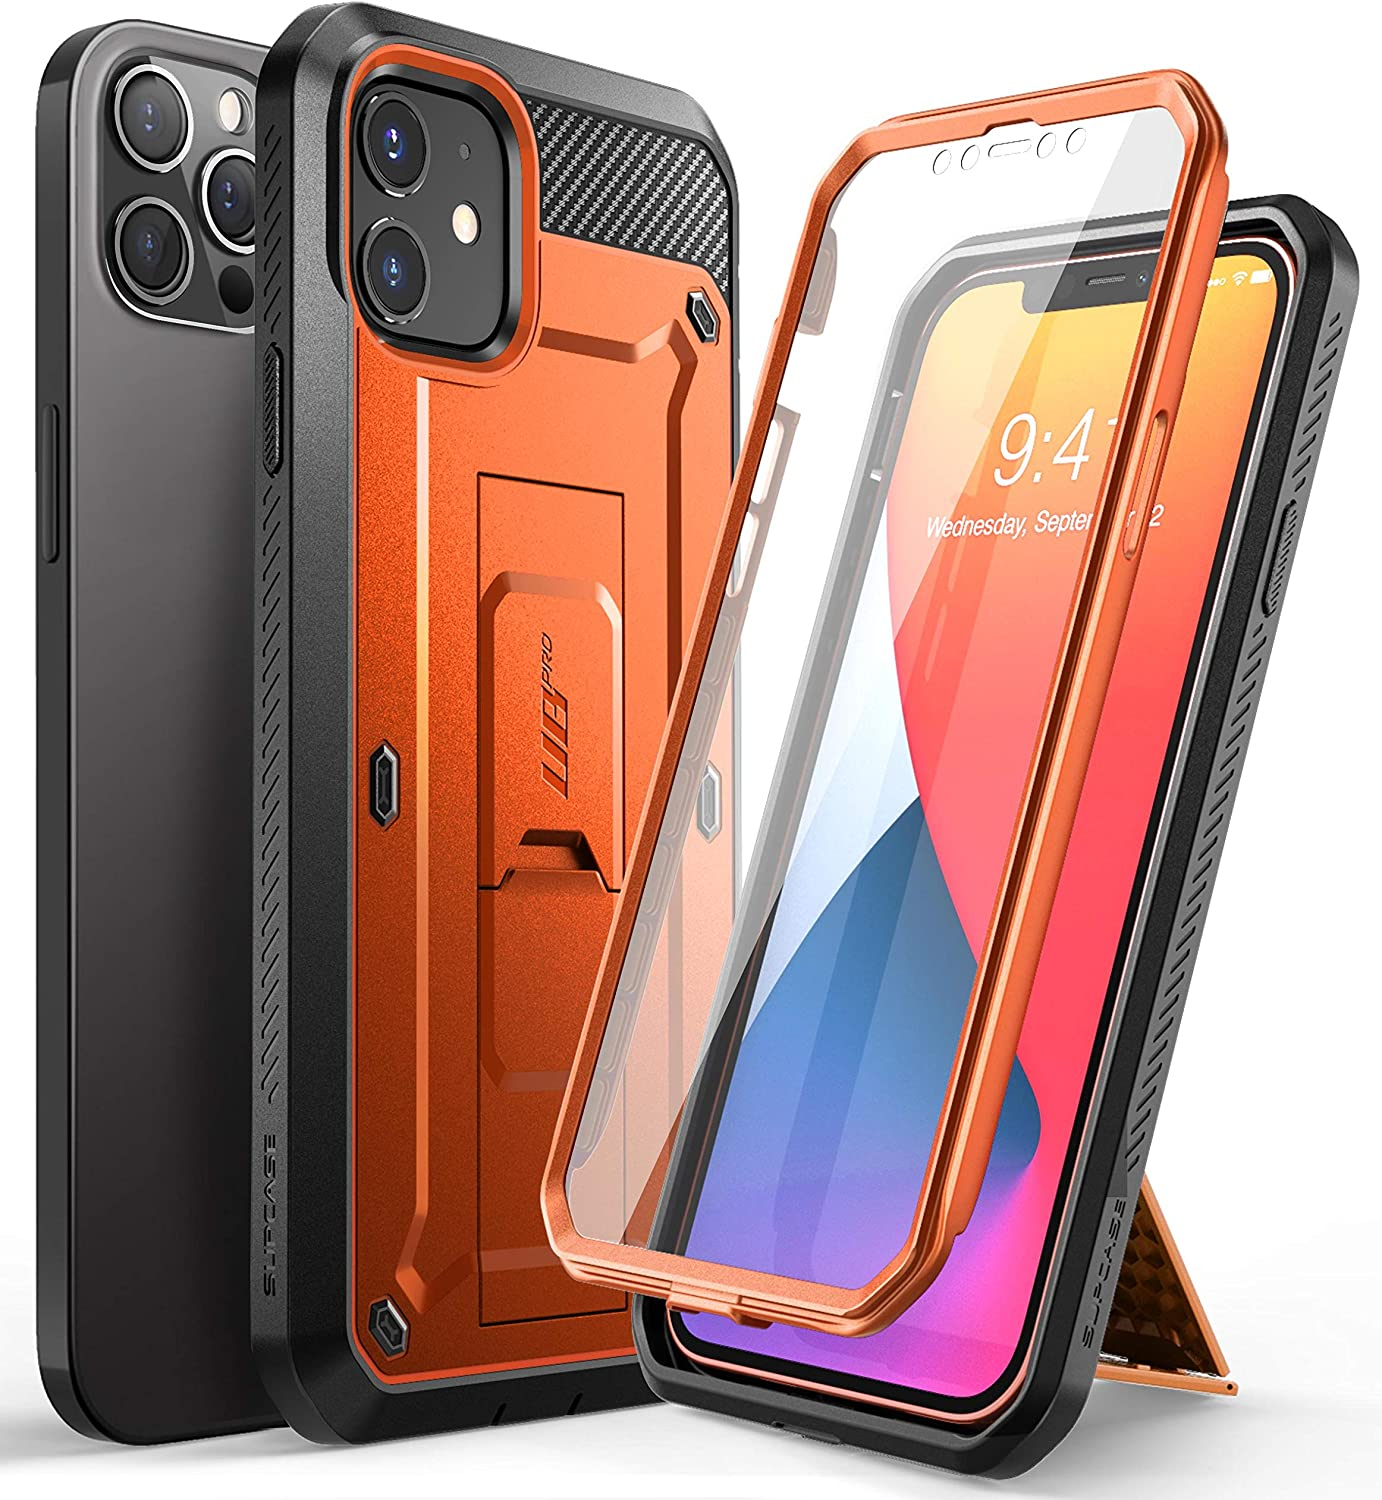 SupCase Unicorn Beetle Pro Series Case for iPhone 12 / iPhone 12 Pro (2020 Release) 6.1 Inch, Built-in Screen Protector Full-Body Rugged Holster Case (Orange)